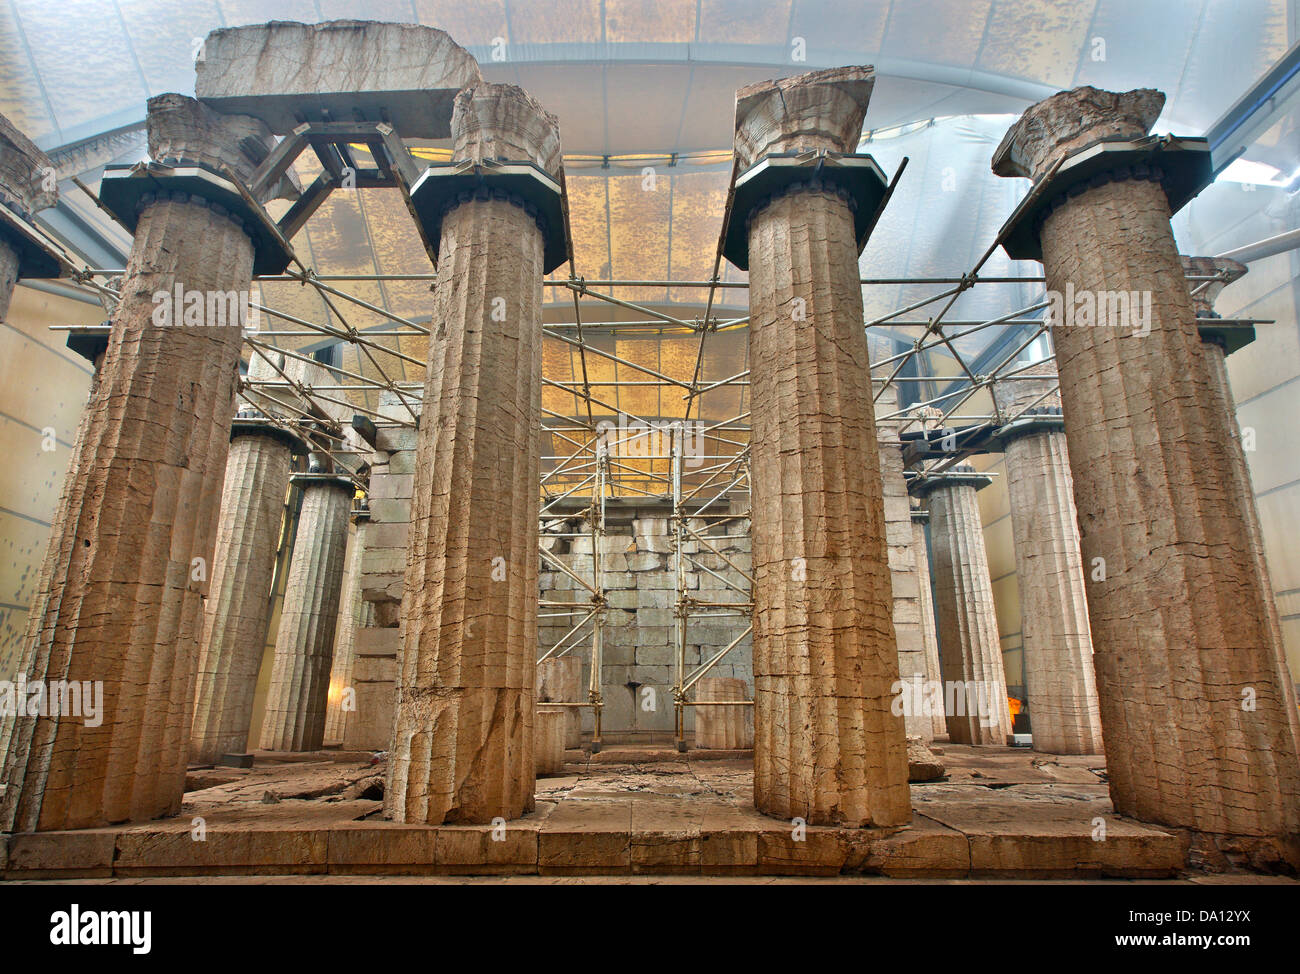 The temple of Apollo Epicurius covered by a protective tent (and fog) at Vasses, Peloponnese, Greece - Stock Image